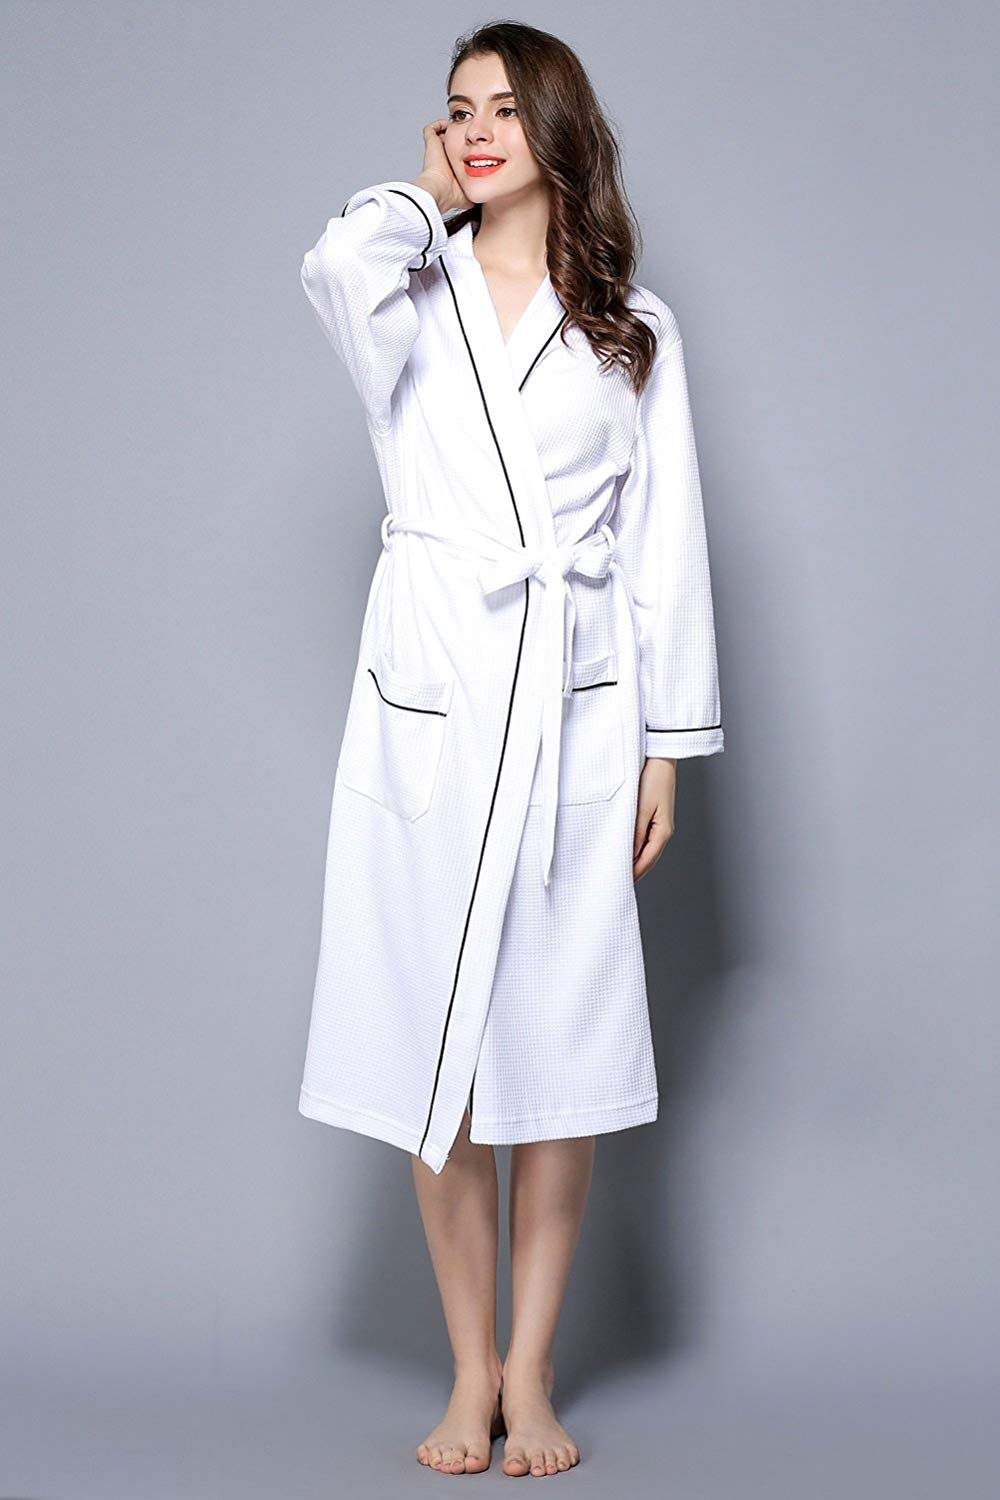 43576694a4 Get Quotations · ALJL Lovers bathrobes soft cotton bathrobe hot spring  gowns knitted cotton comfortable breathable white bathrobes